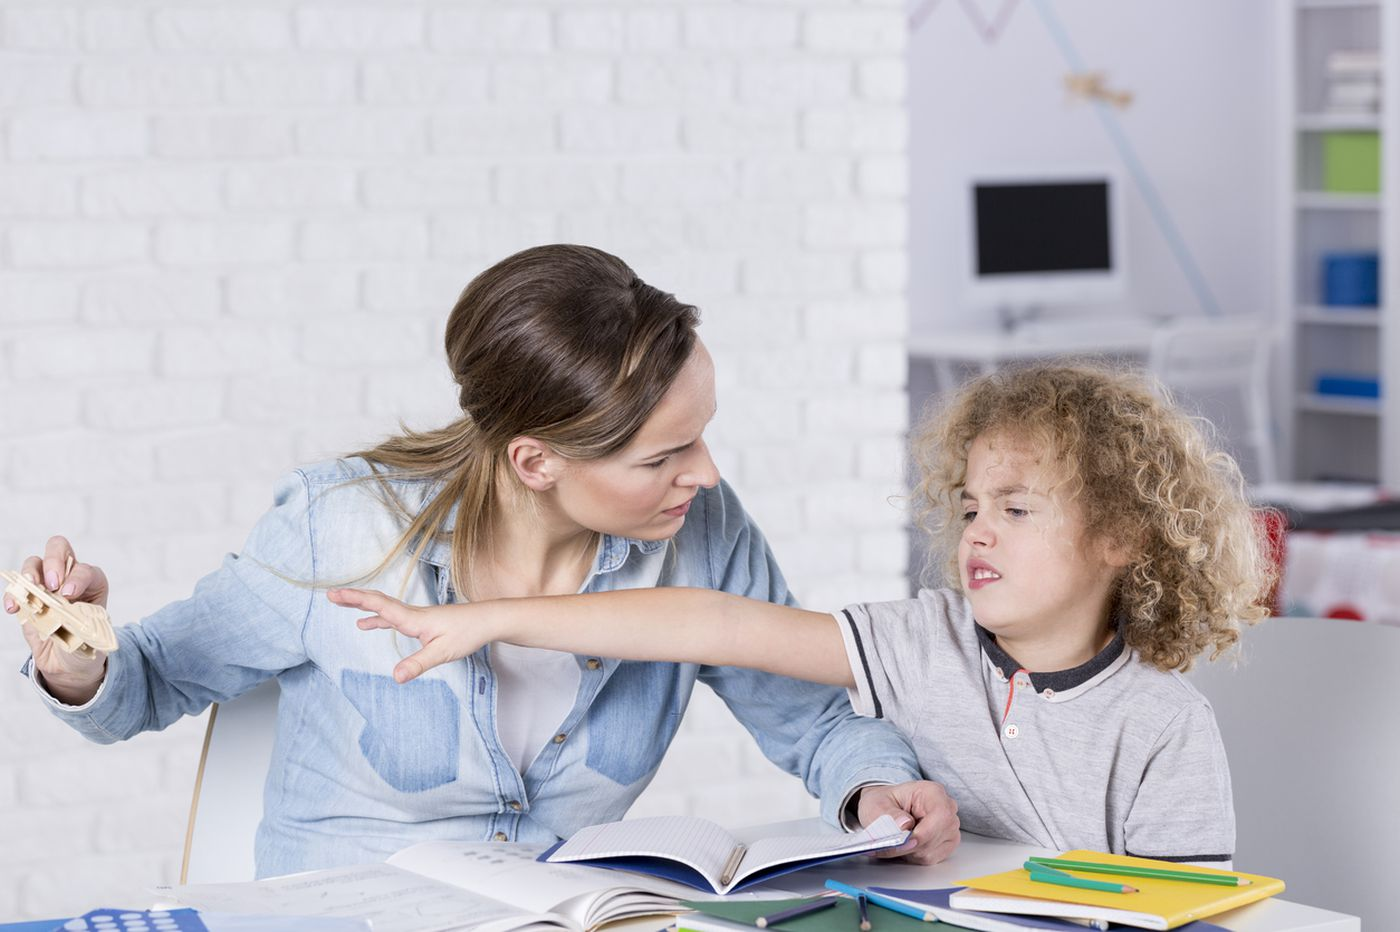 5 common mistakes parents make with their ADHD kids and how to fix them